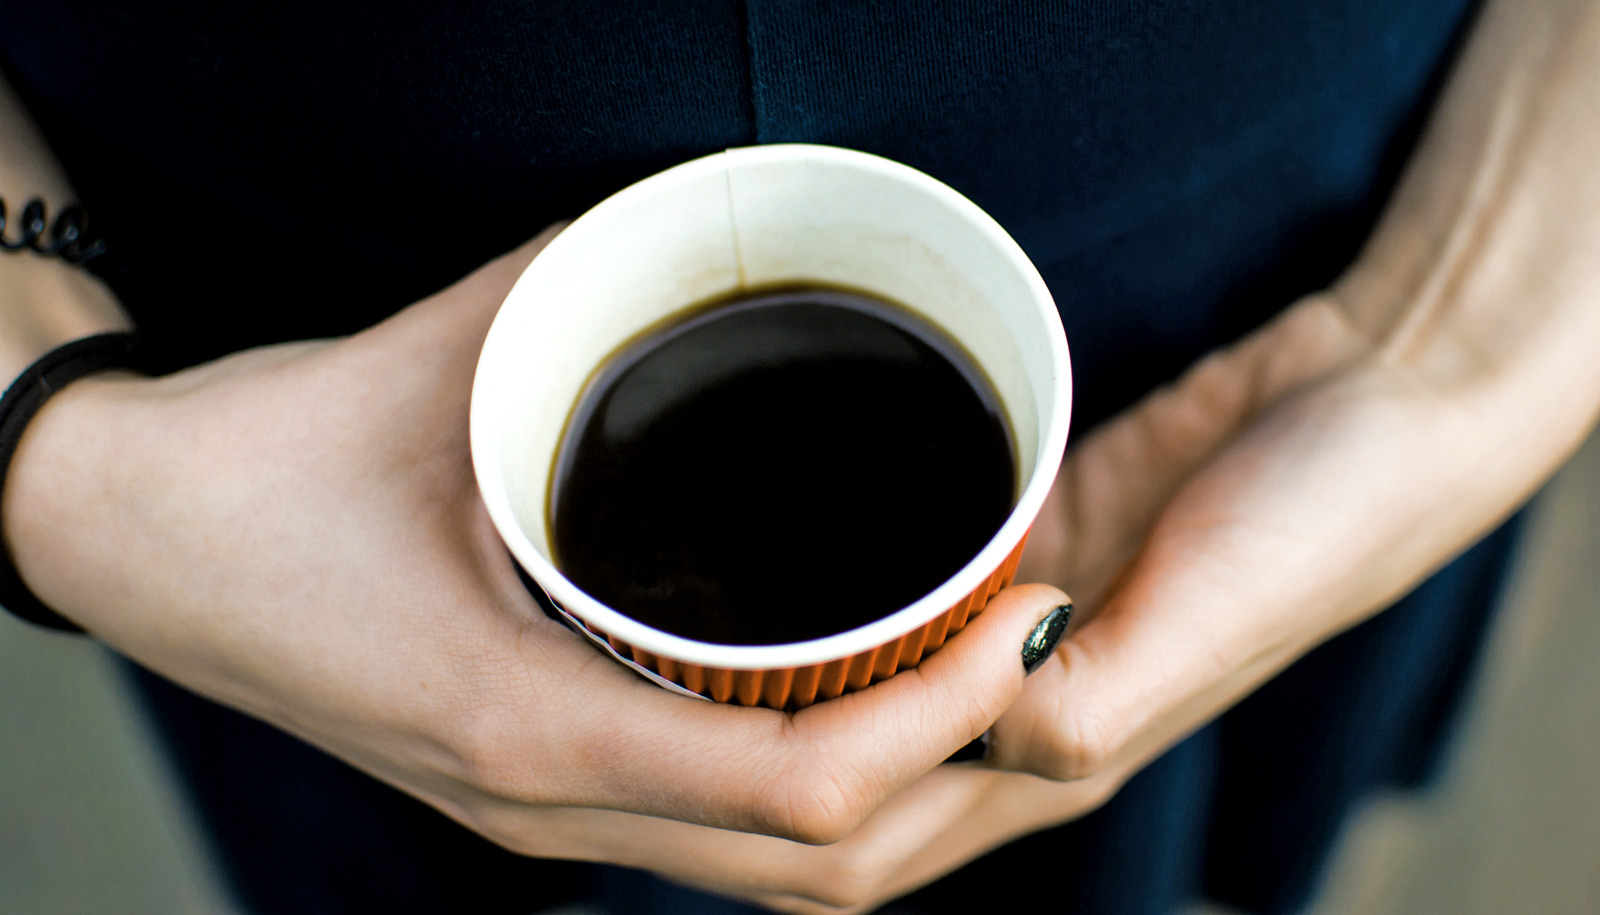 4 ways to promote reusable coffee cups - Futurity